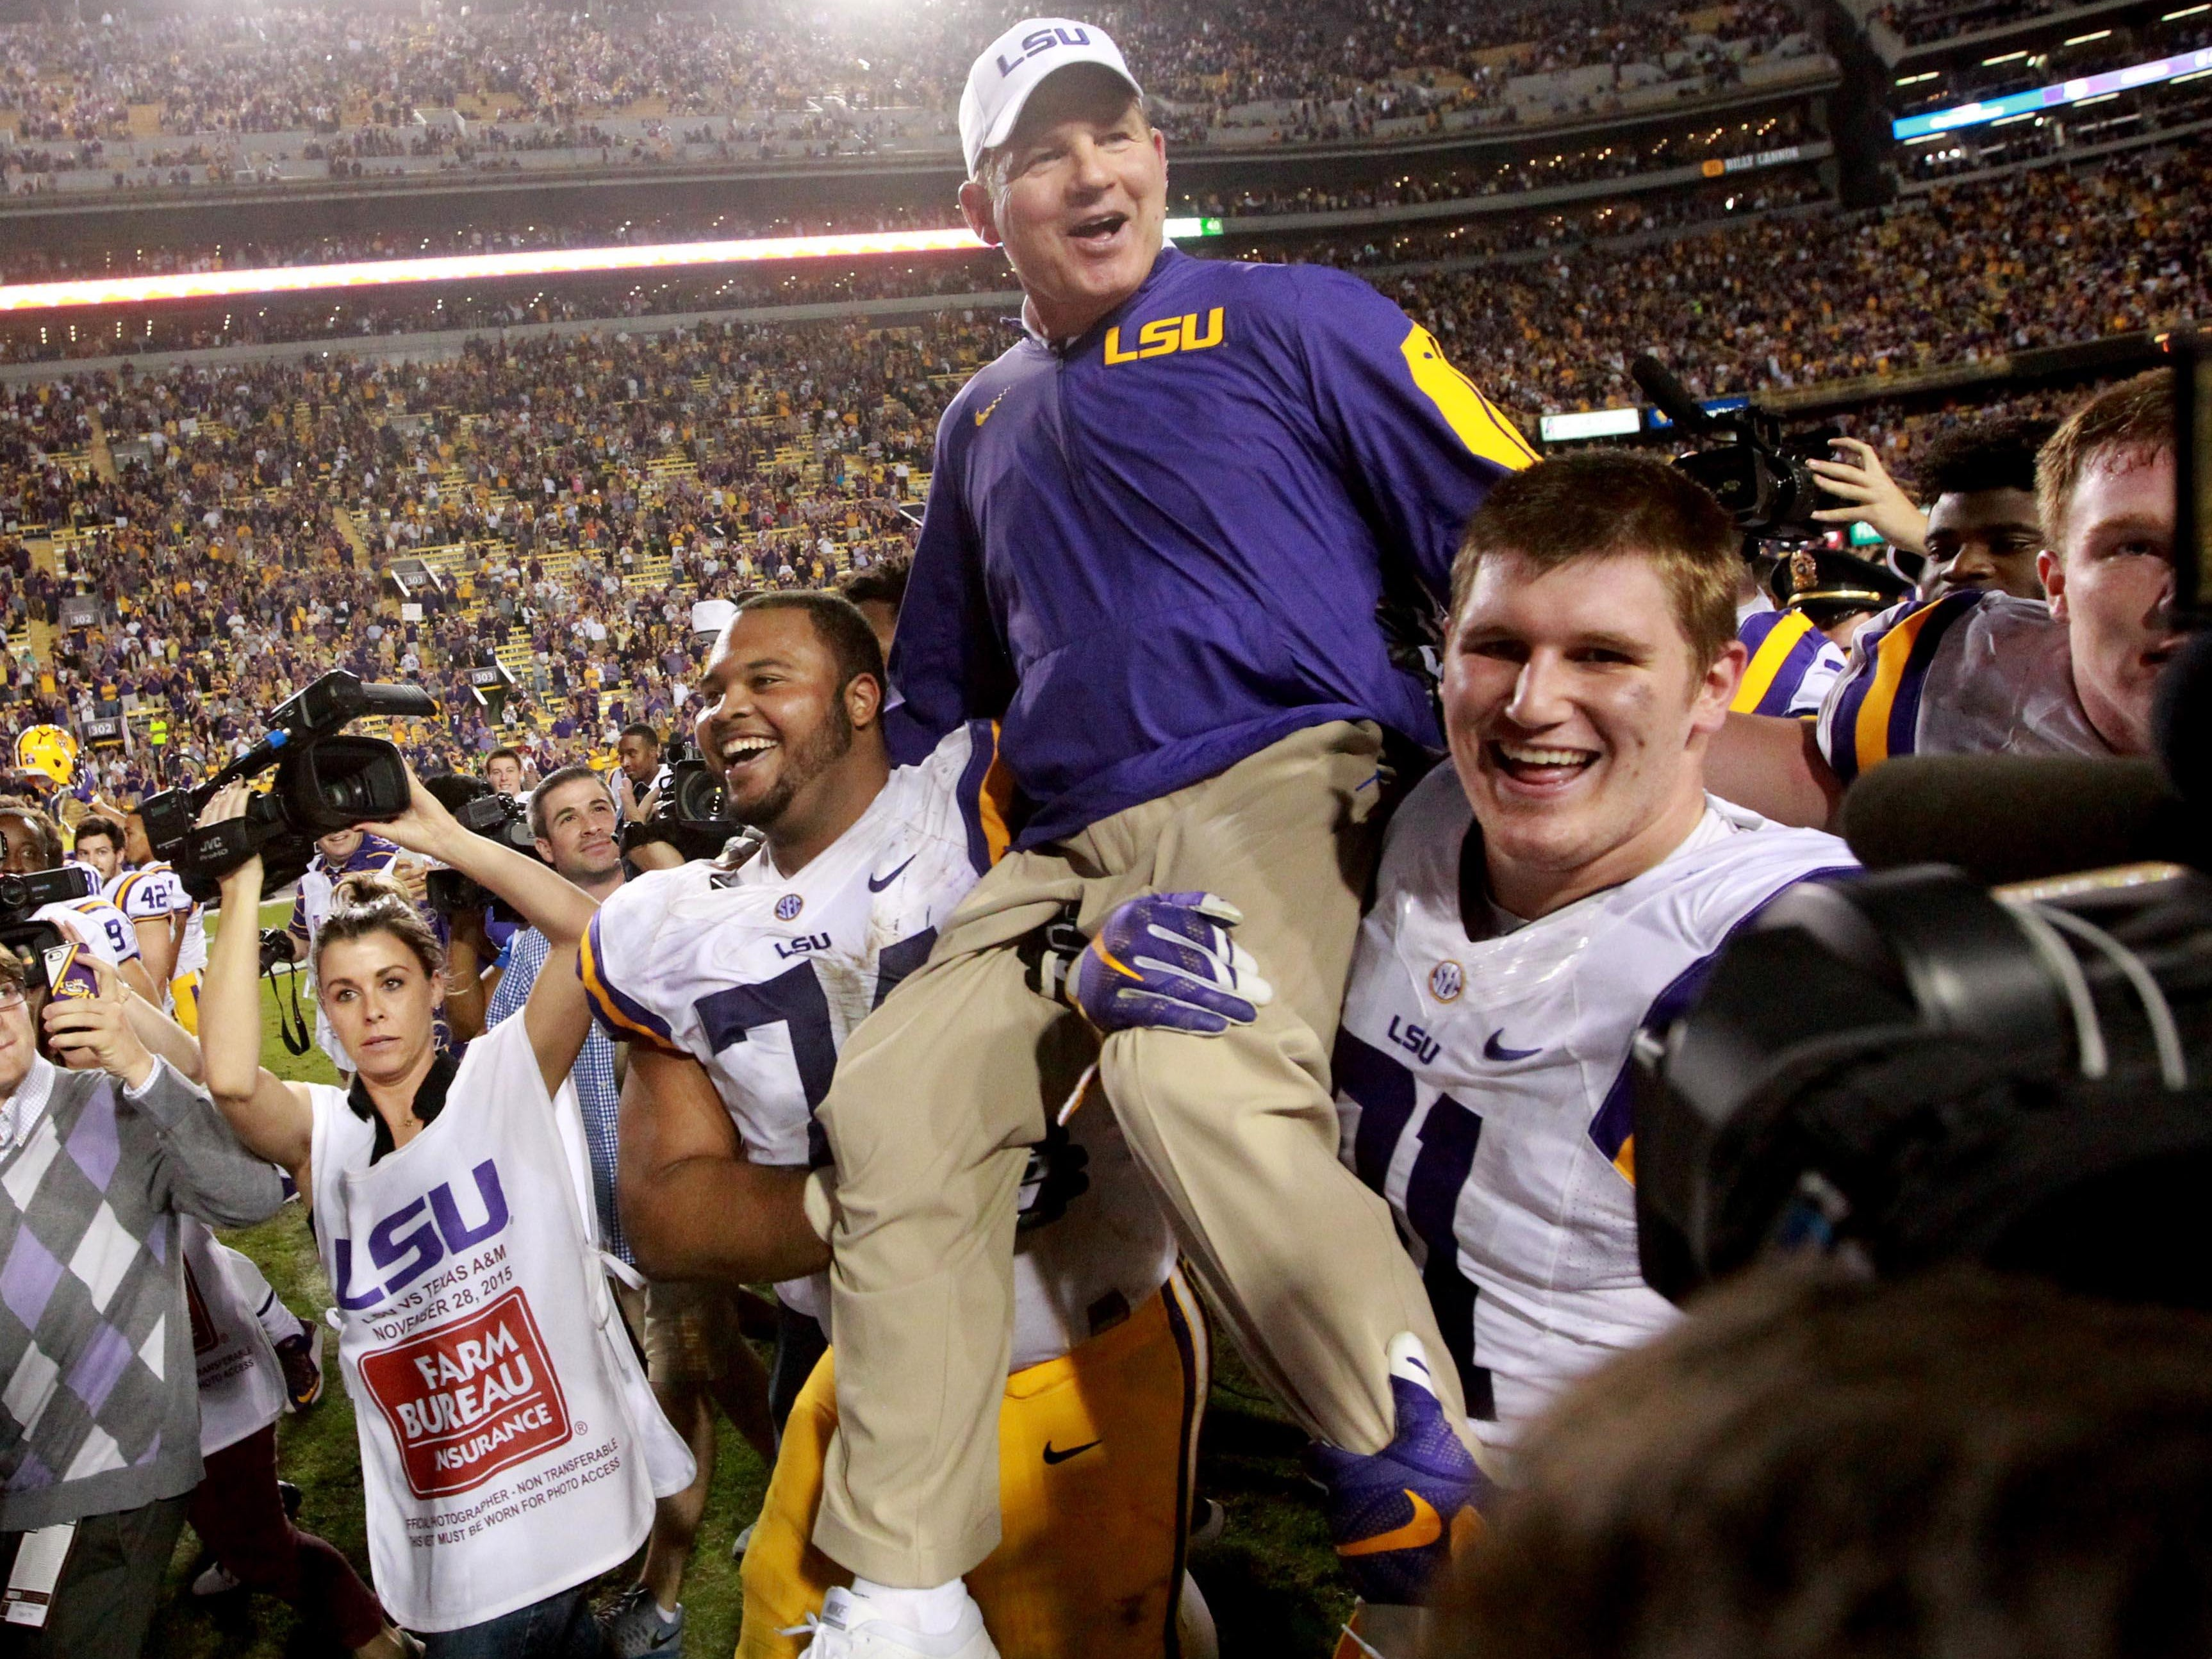 LSU head coach Les Miles is carried by his players after defeating the Texas A&M Aggies 19-7 at Tiger Stadium.